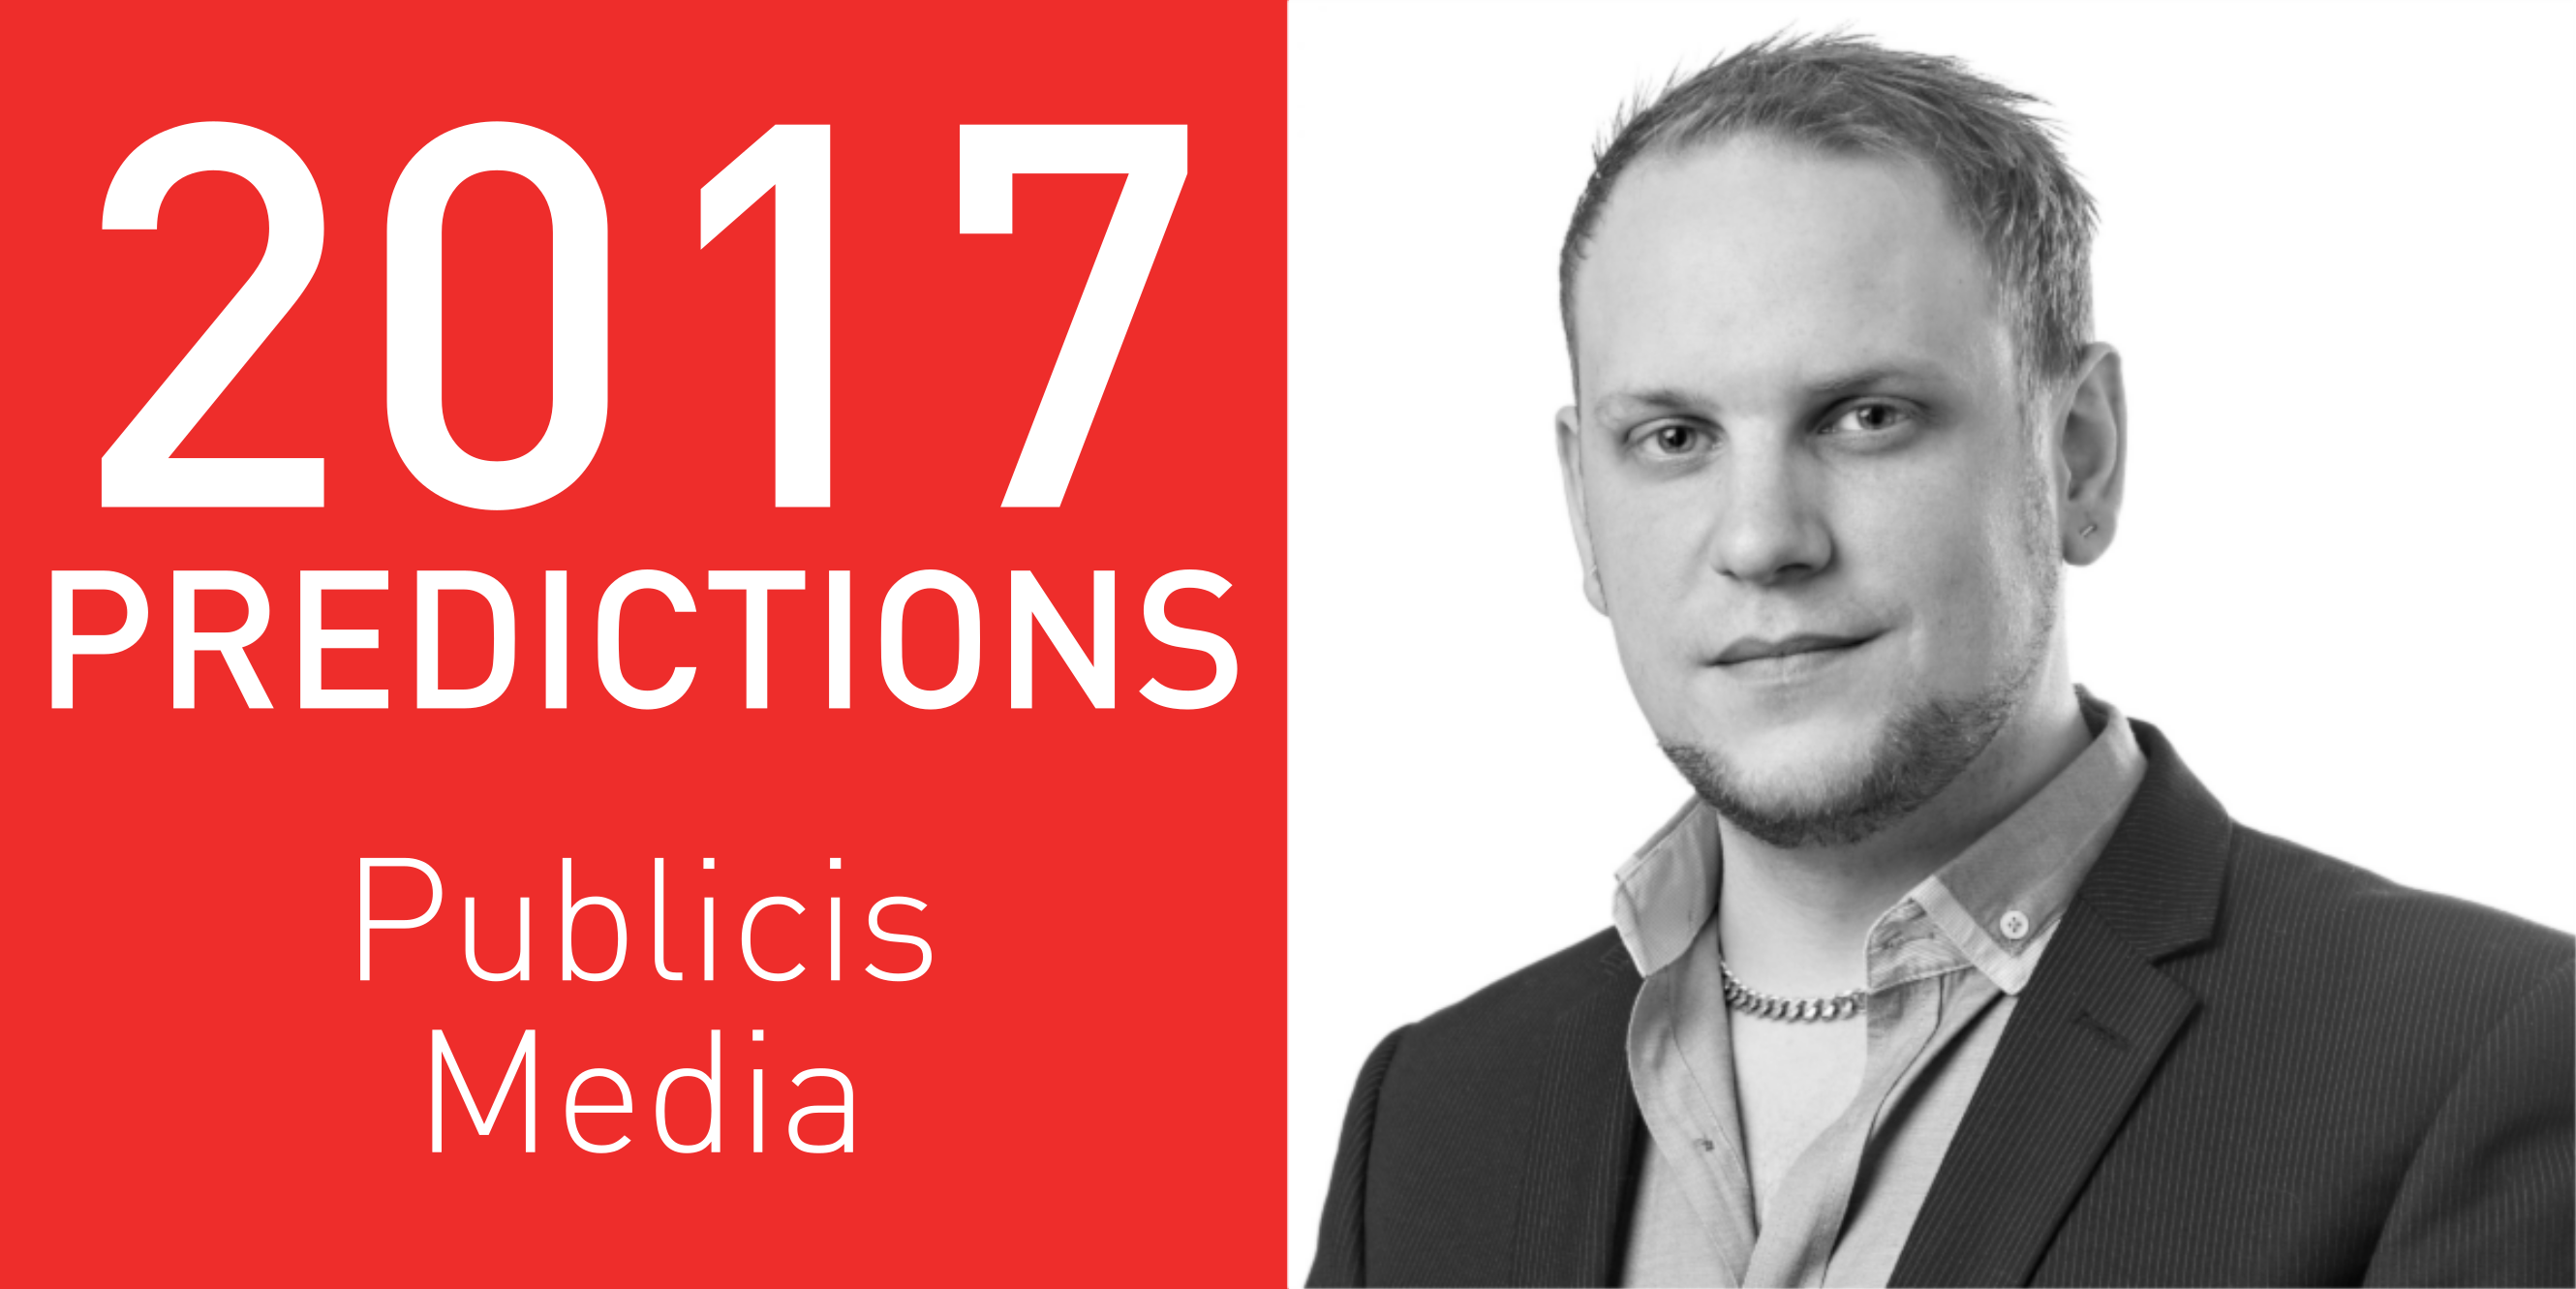 2017 Predictions: Publicis Media